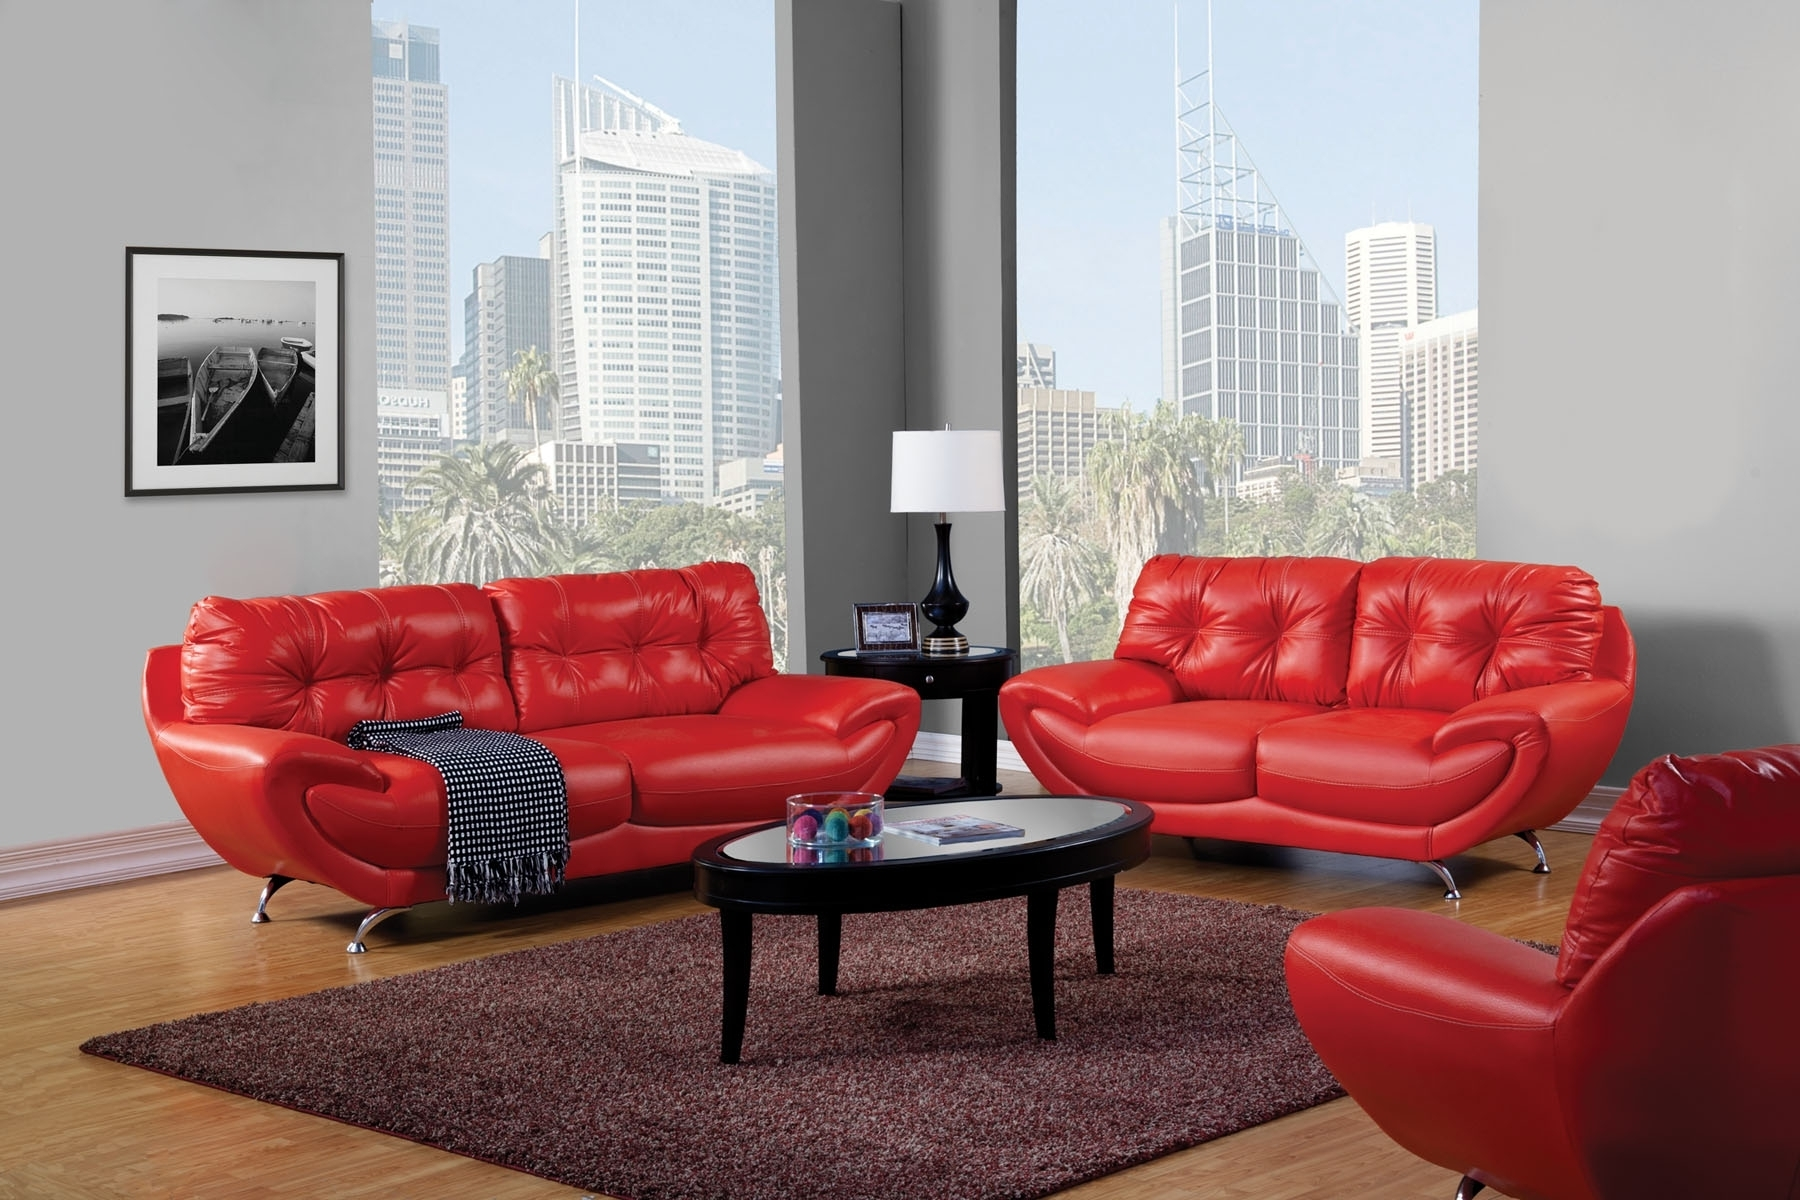 Red Leather Couches For Living Room Inside Well Known Red Leather Sofa Living Room Design • Living Room Design (View 16 of 20)